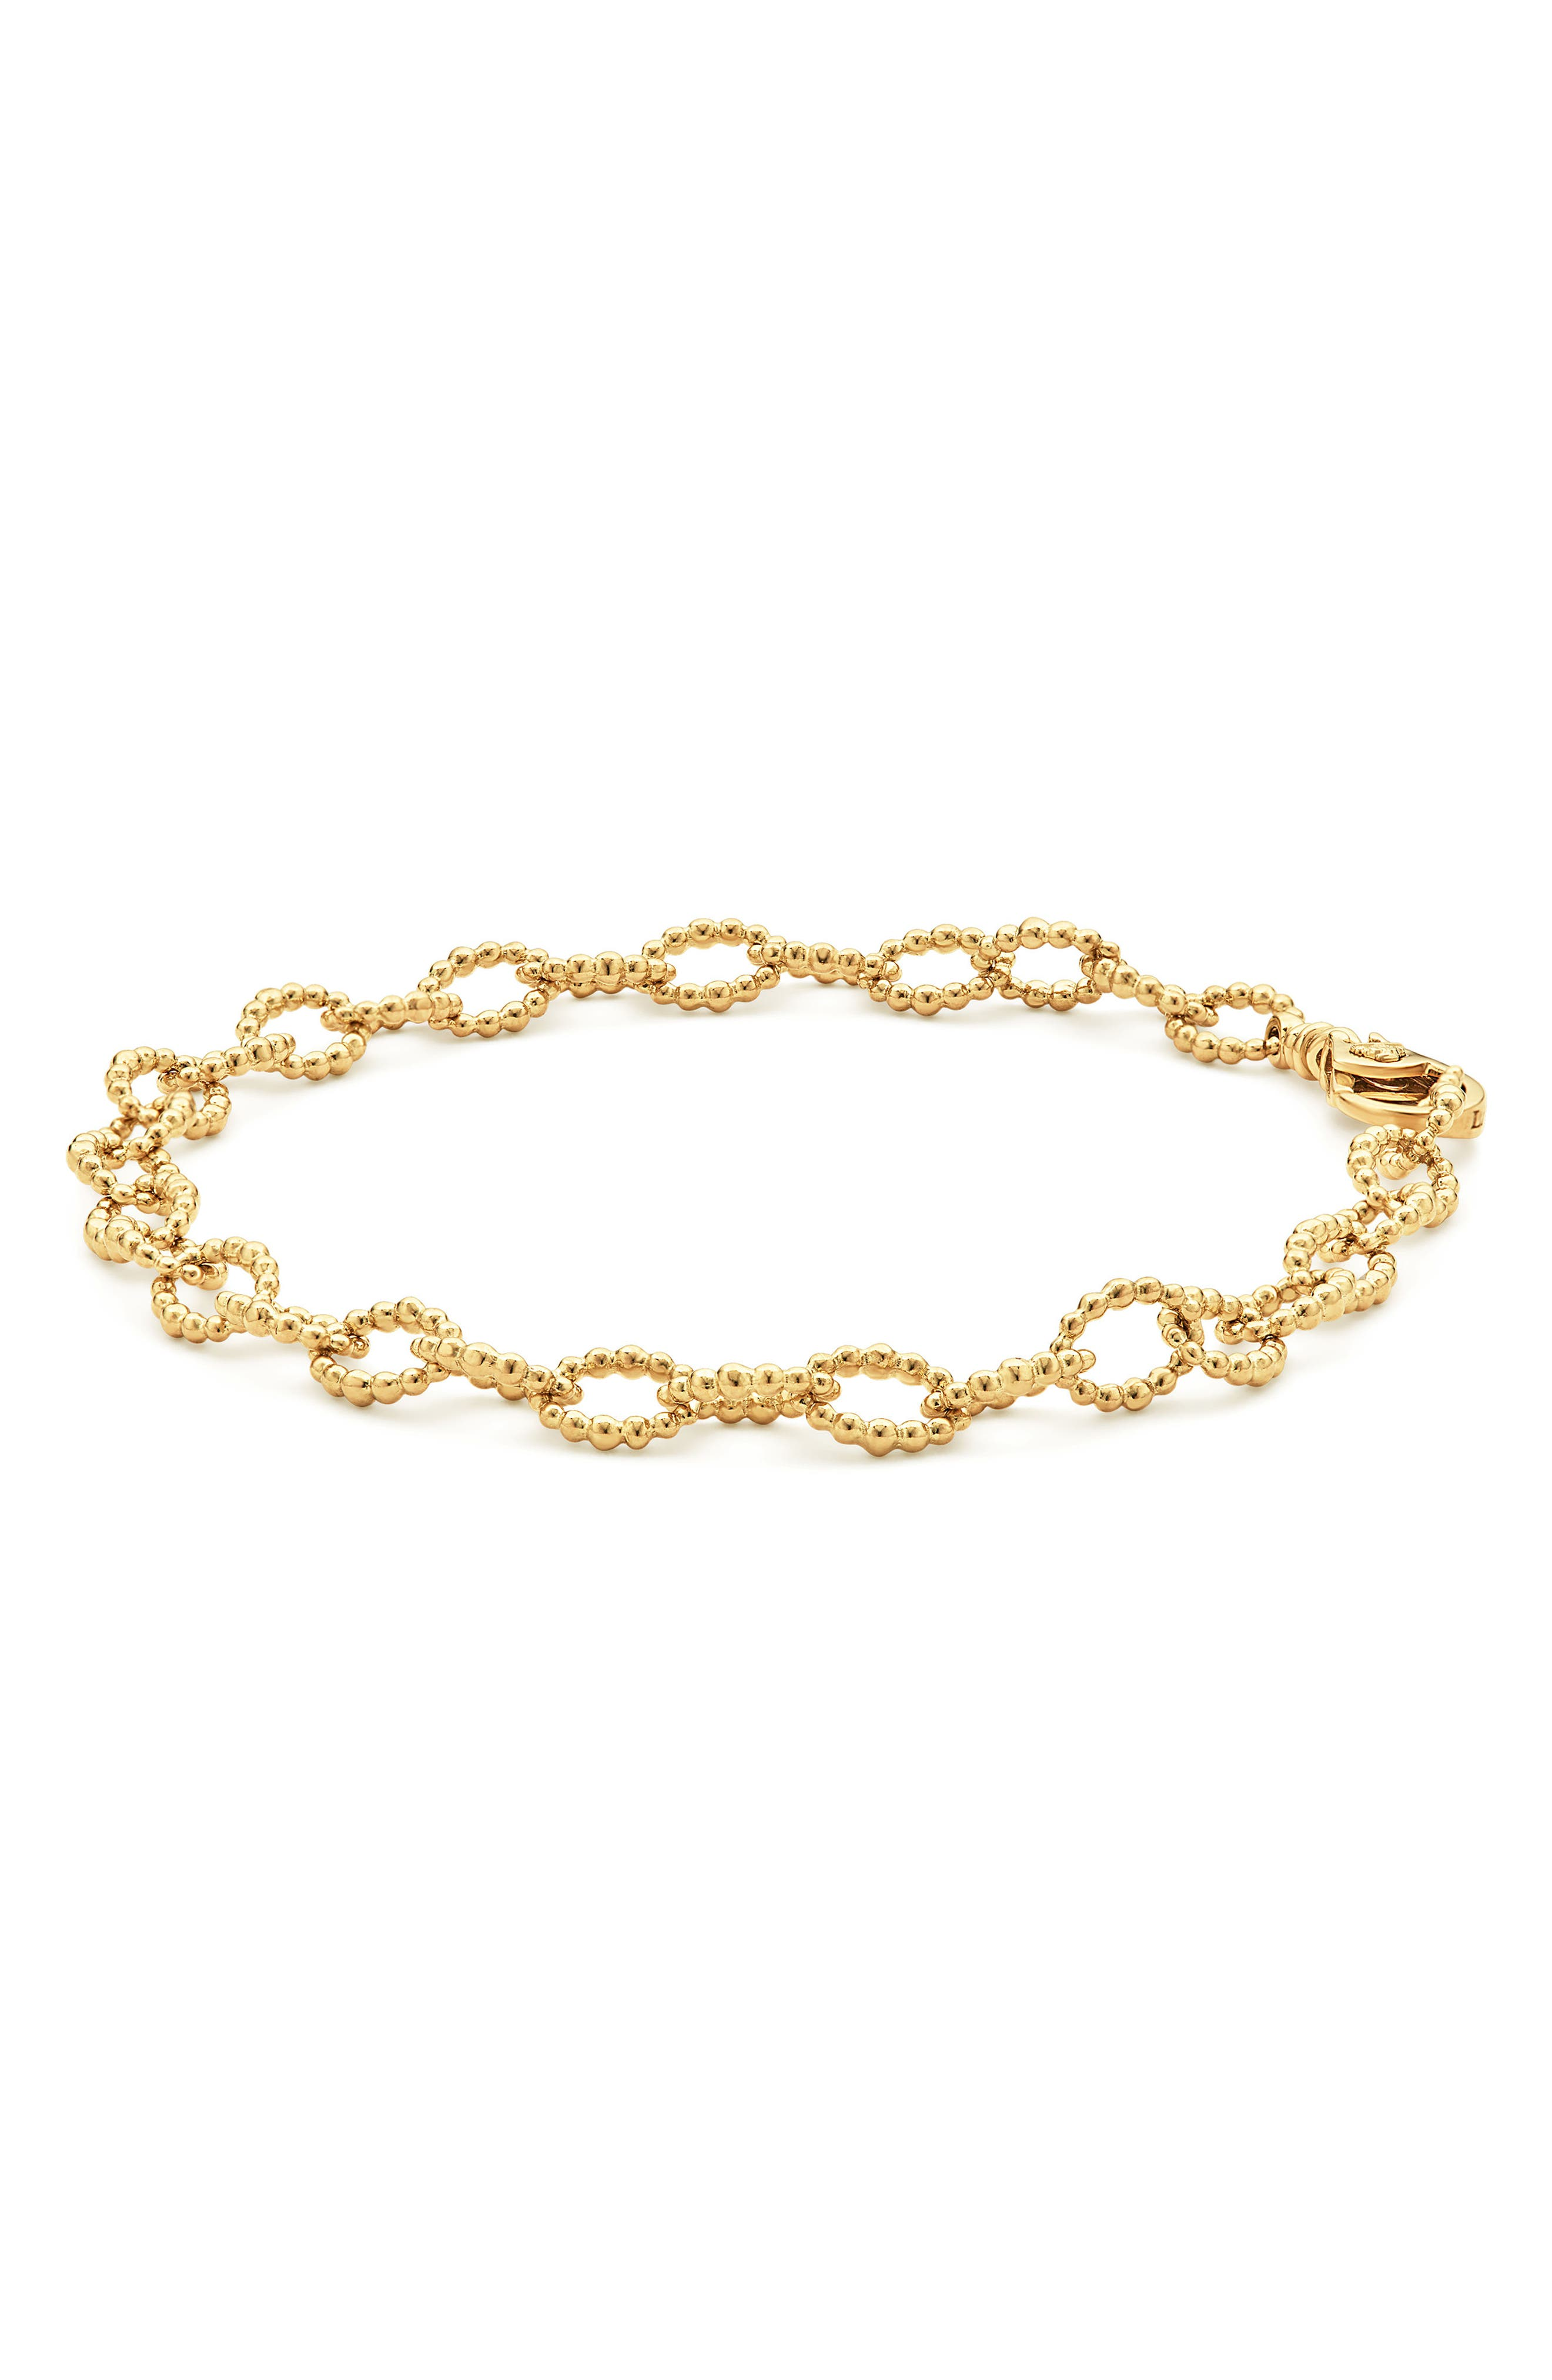 Caviar Link Bracelet,                             Alternate thumbnail 6, color,                             GOLD